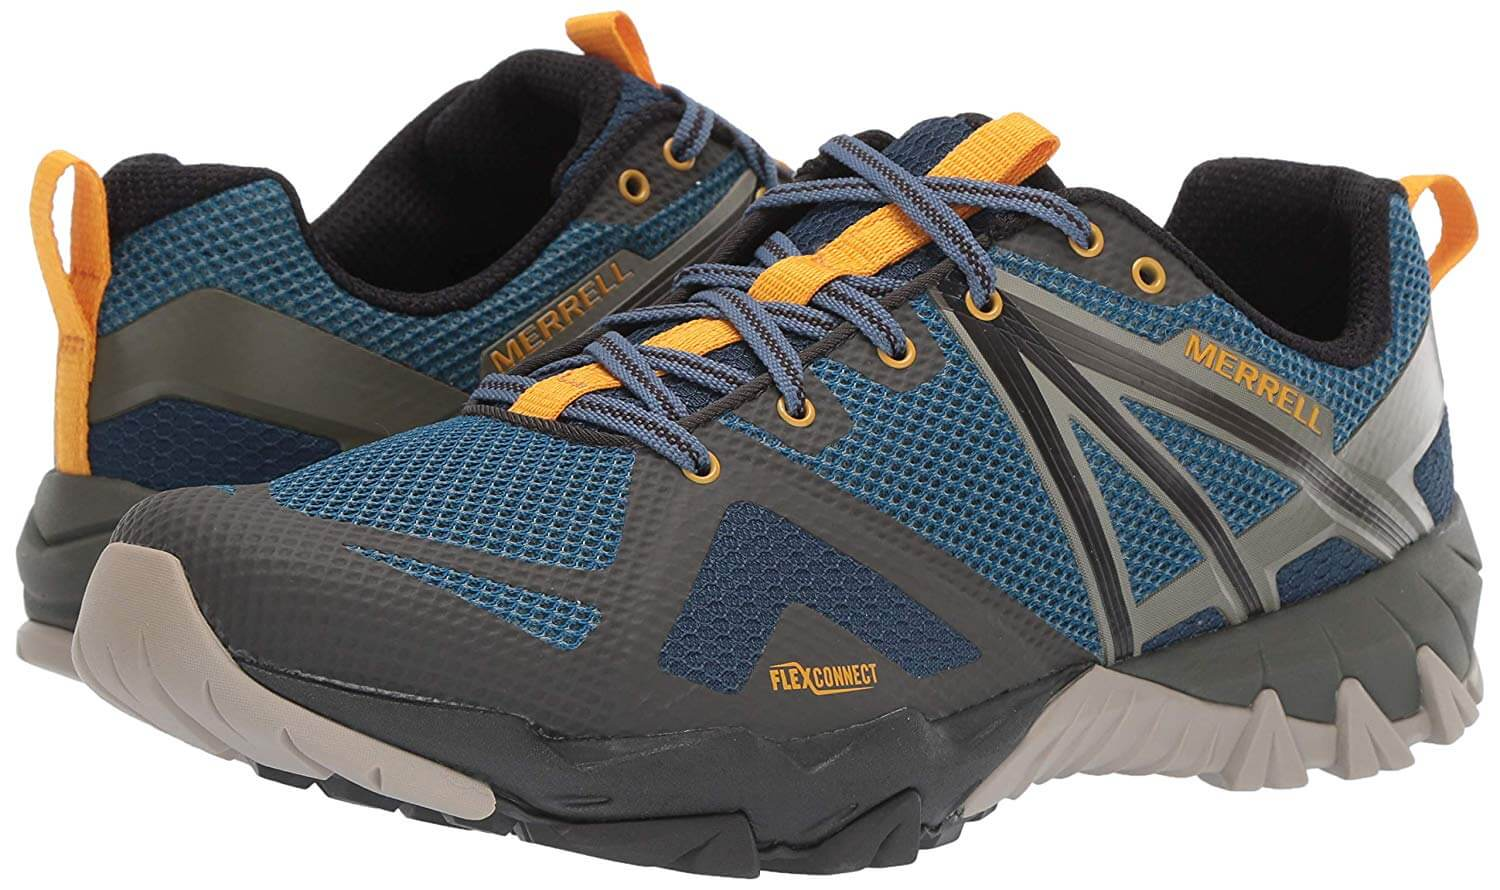 Merrell MQM Ace pair